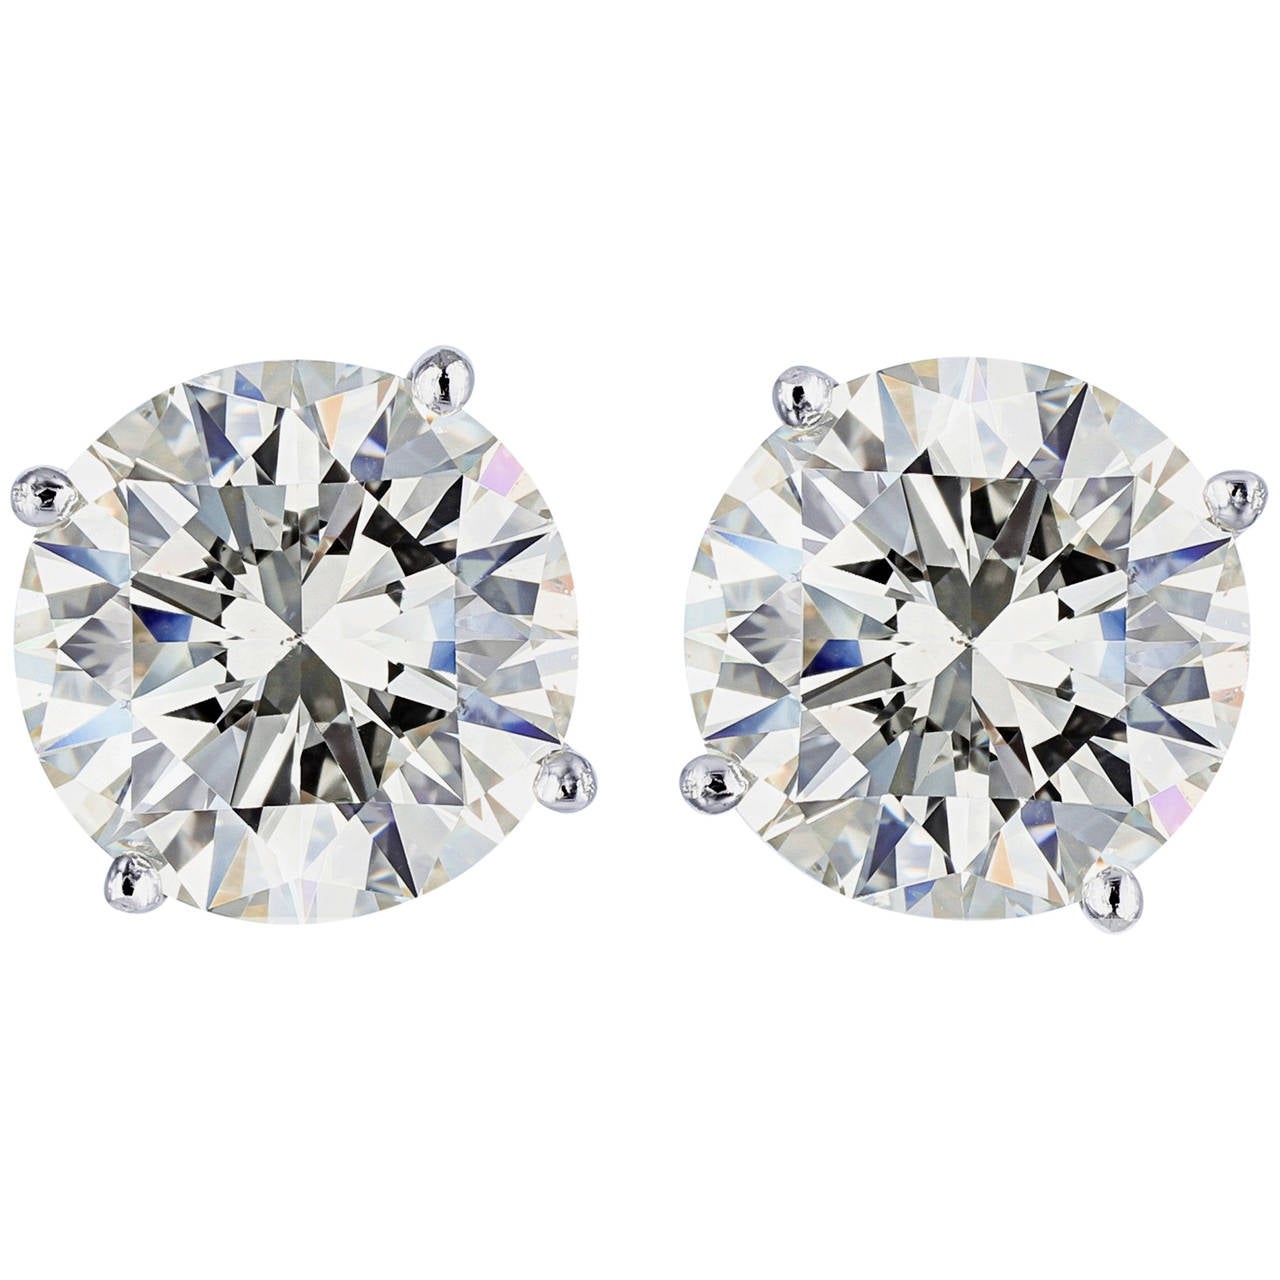 4.57 Carat GIA Cert Round Brilliant Diamond Gold Stud Earrings For Sale